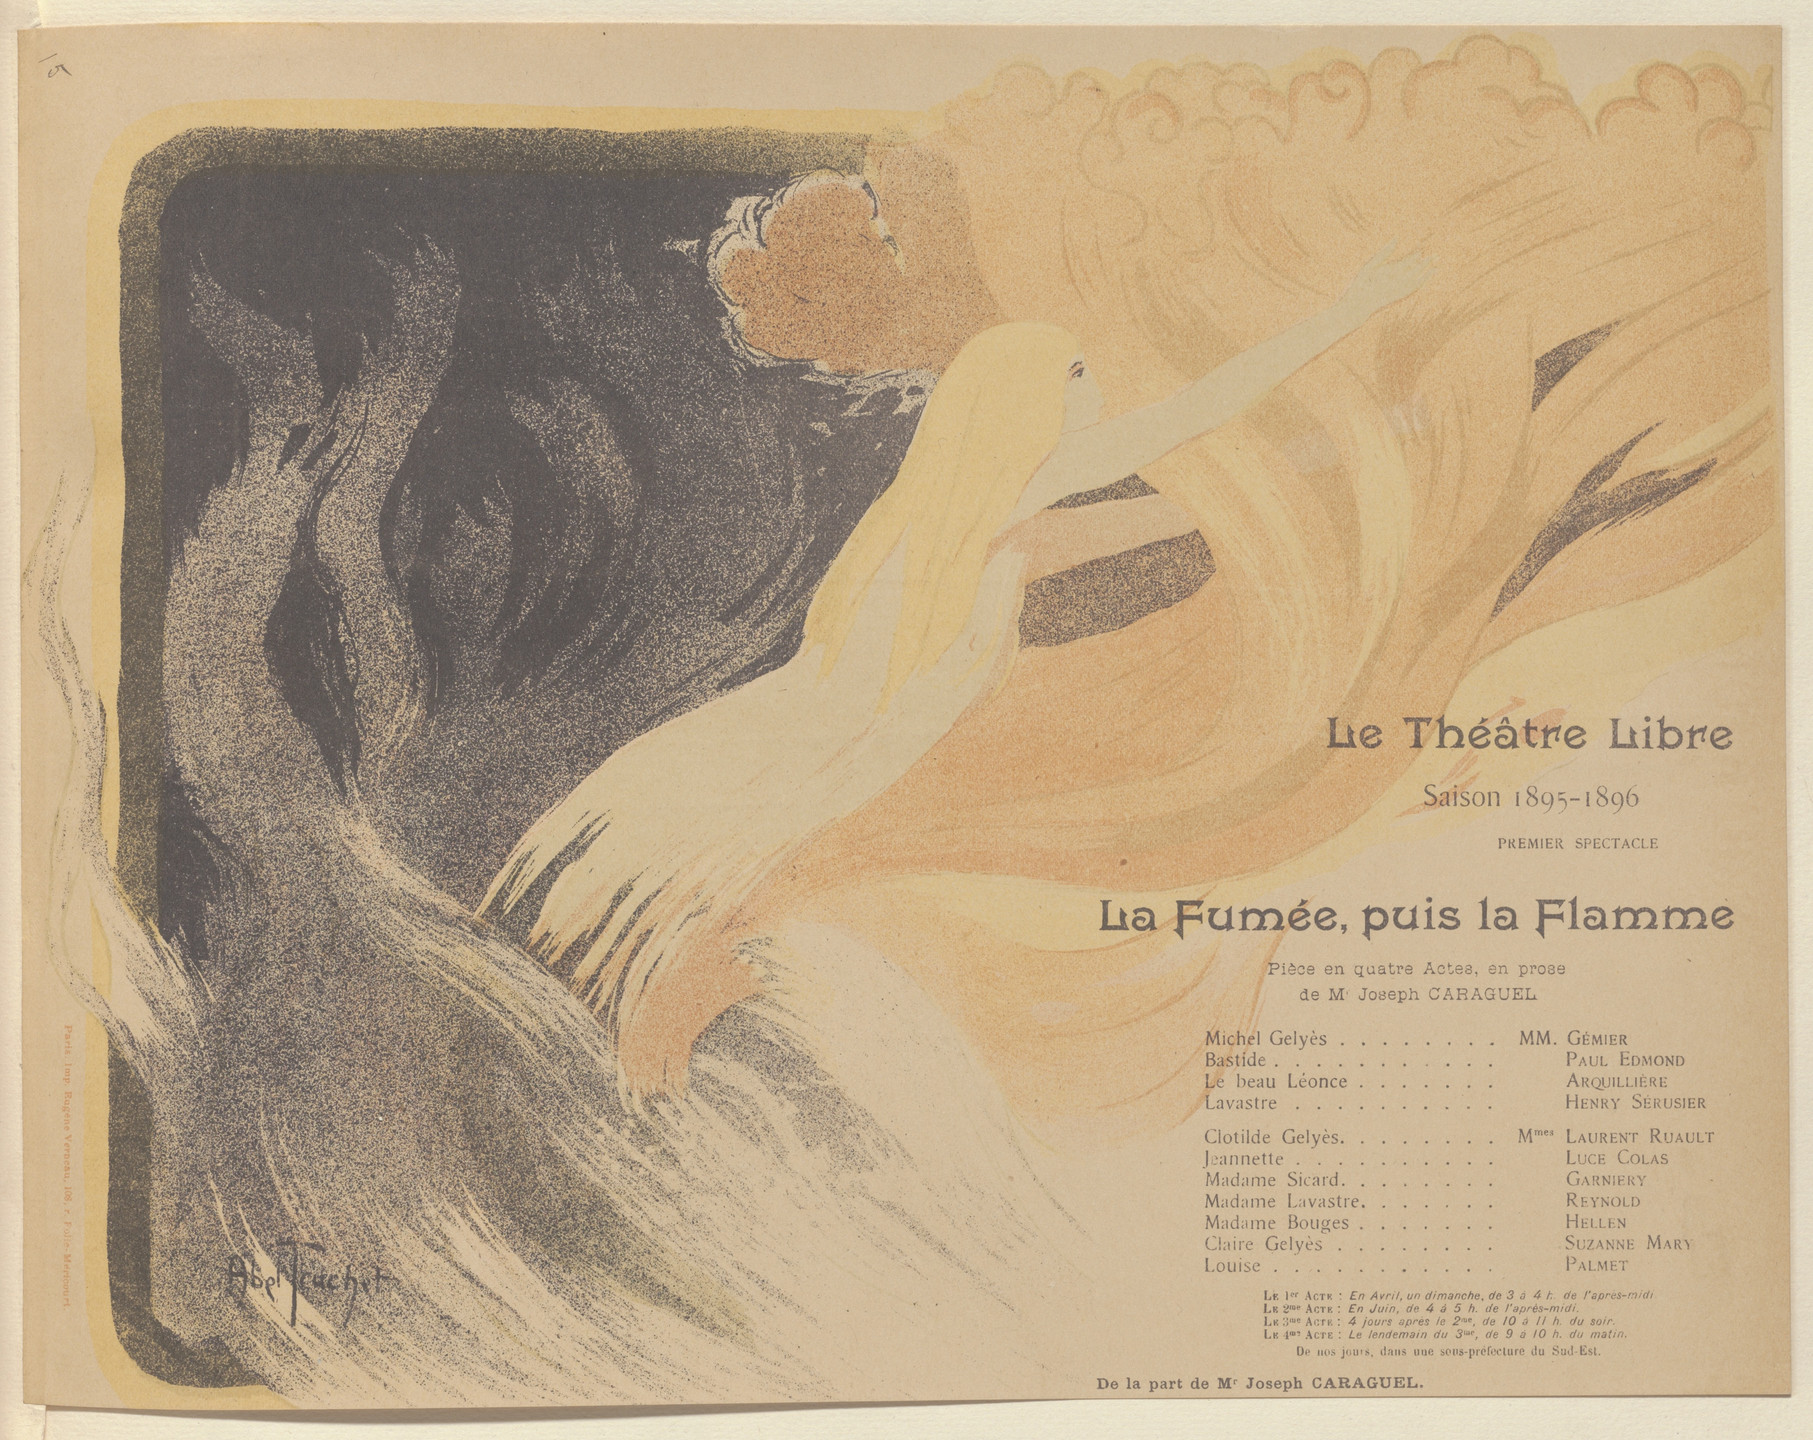 Louis Abel-Truchet. Program for Smoke then Flame (La Fumée, puis la Flamme) from The Beraldi Album of Theatre Programs. 1895